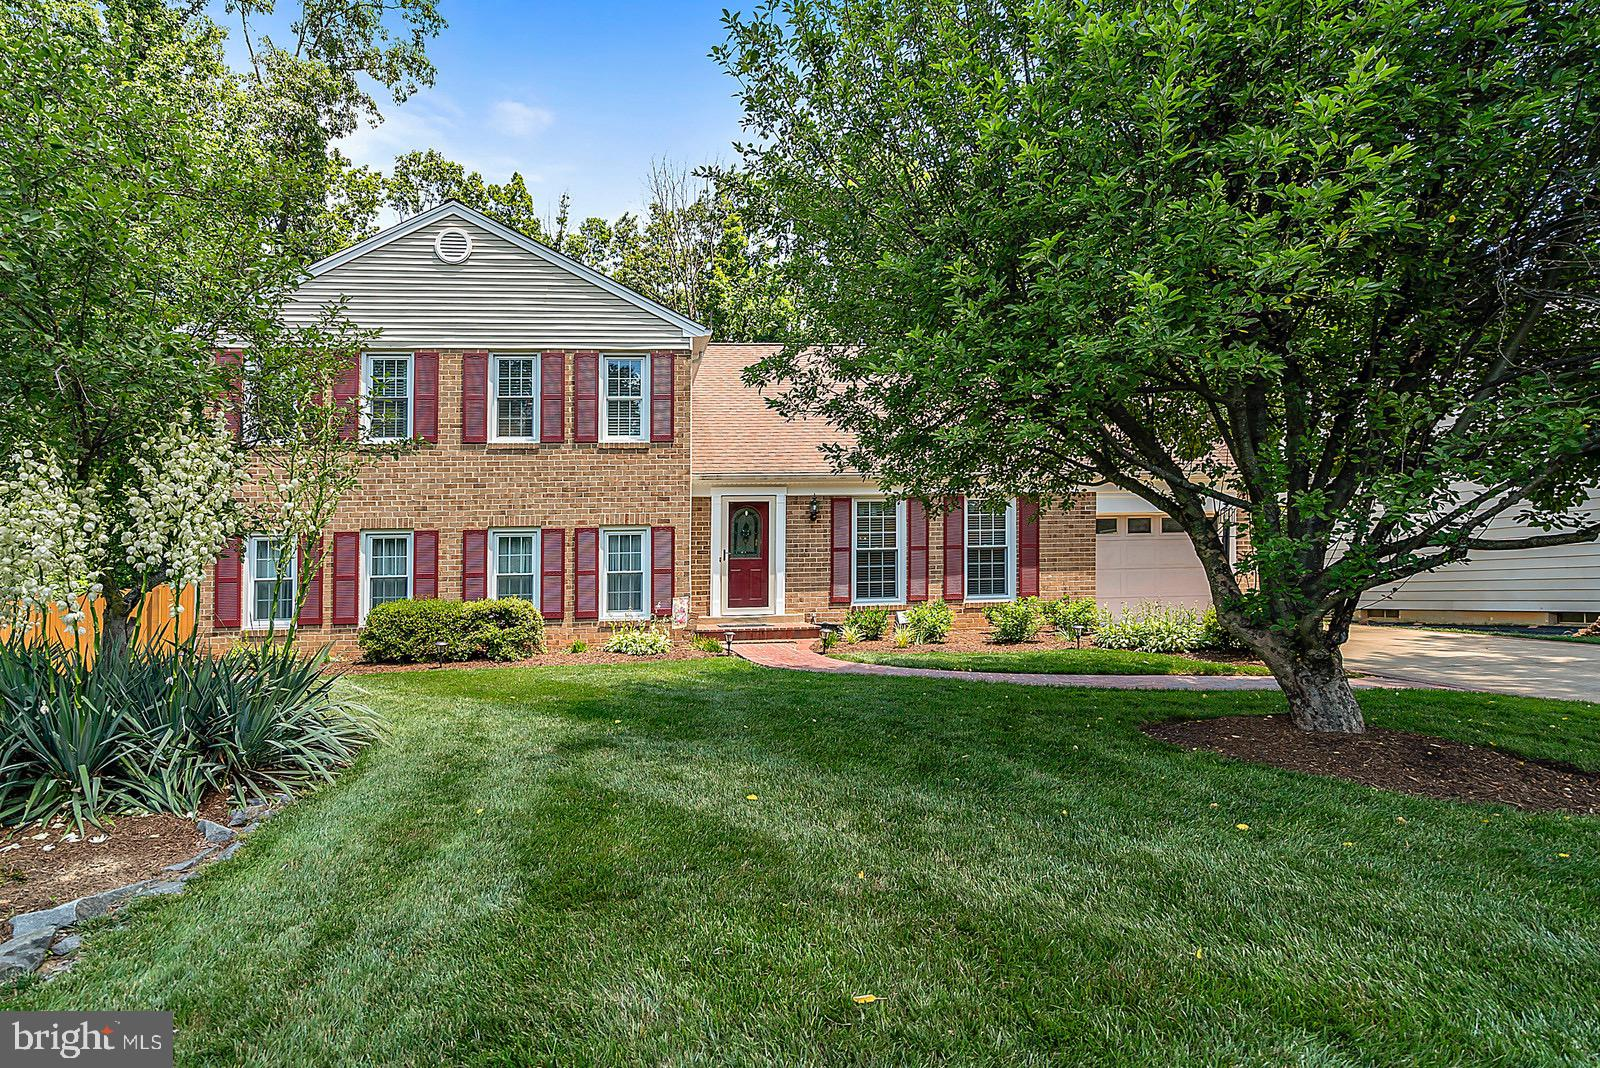 8804 SIDE SADDLE ROAD, SPRINGFIELD, VA 22152